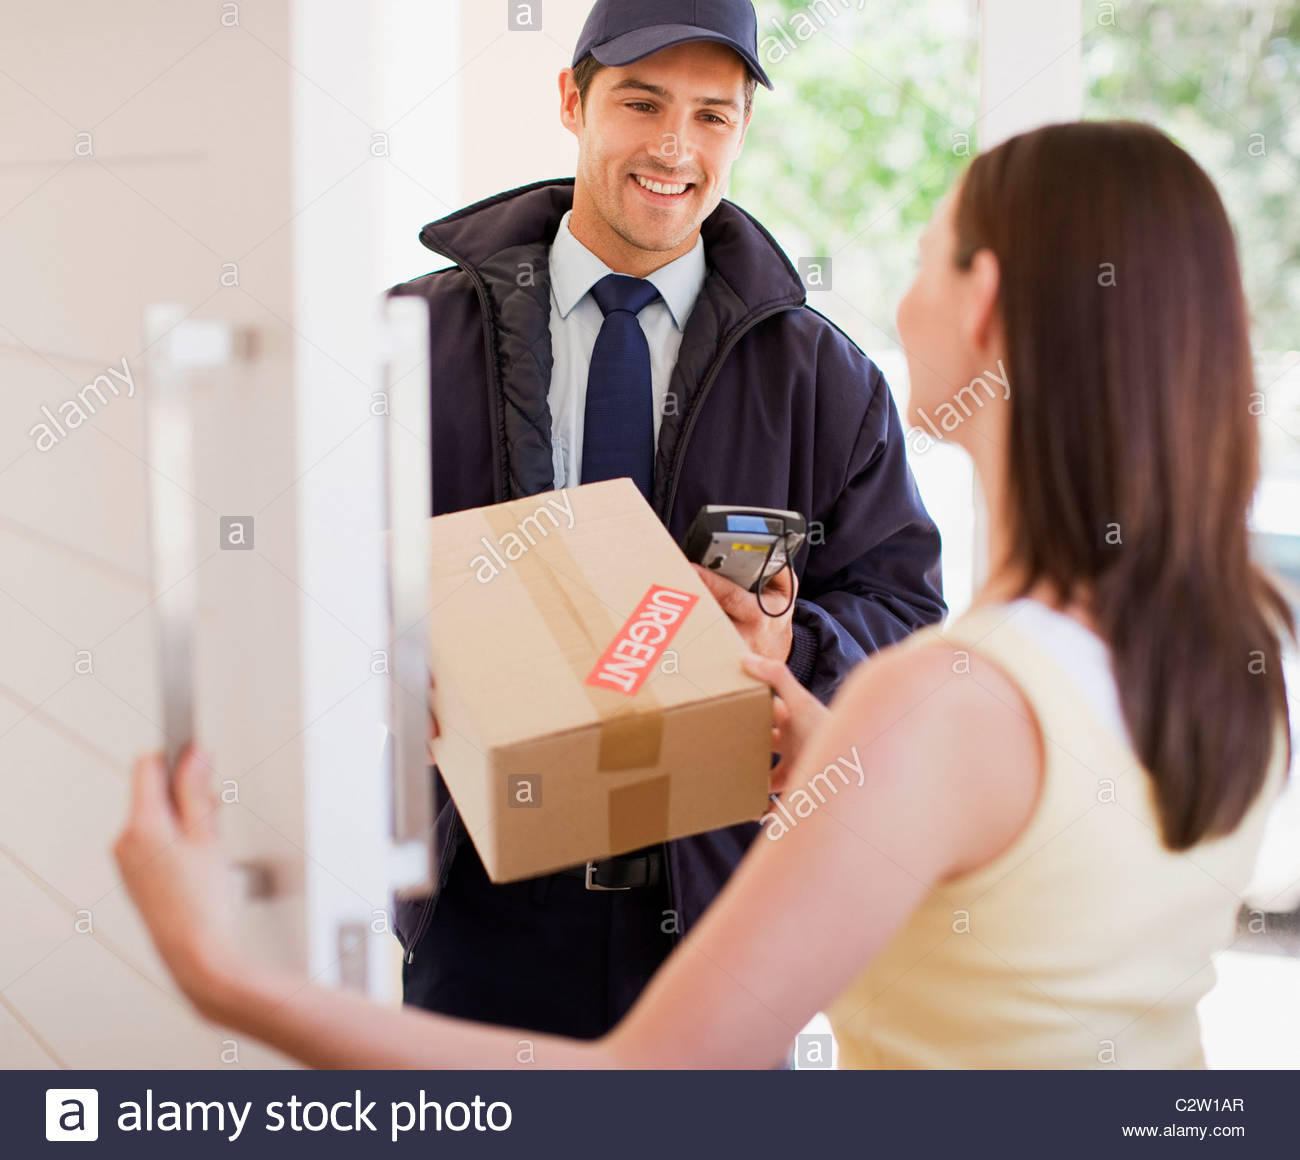 delivery man handing box to woman stock photo 36199935 alamy